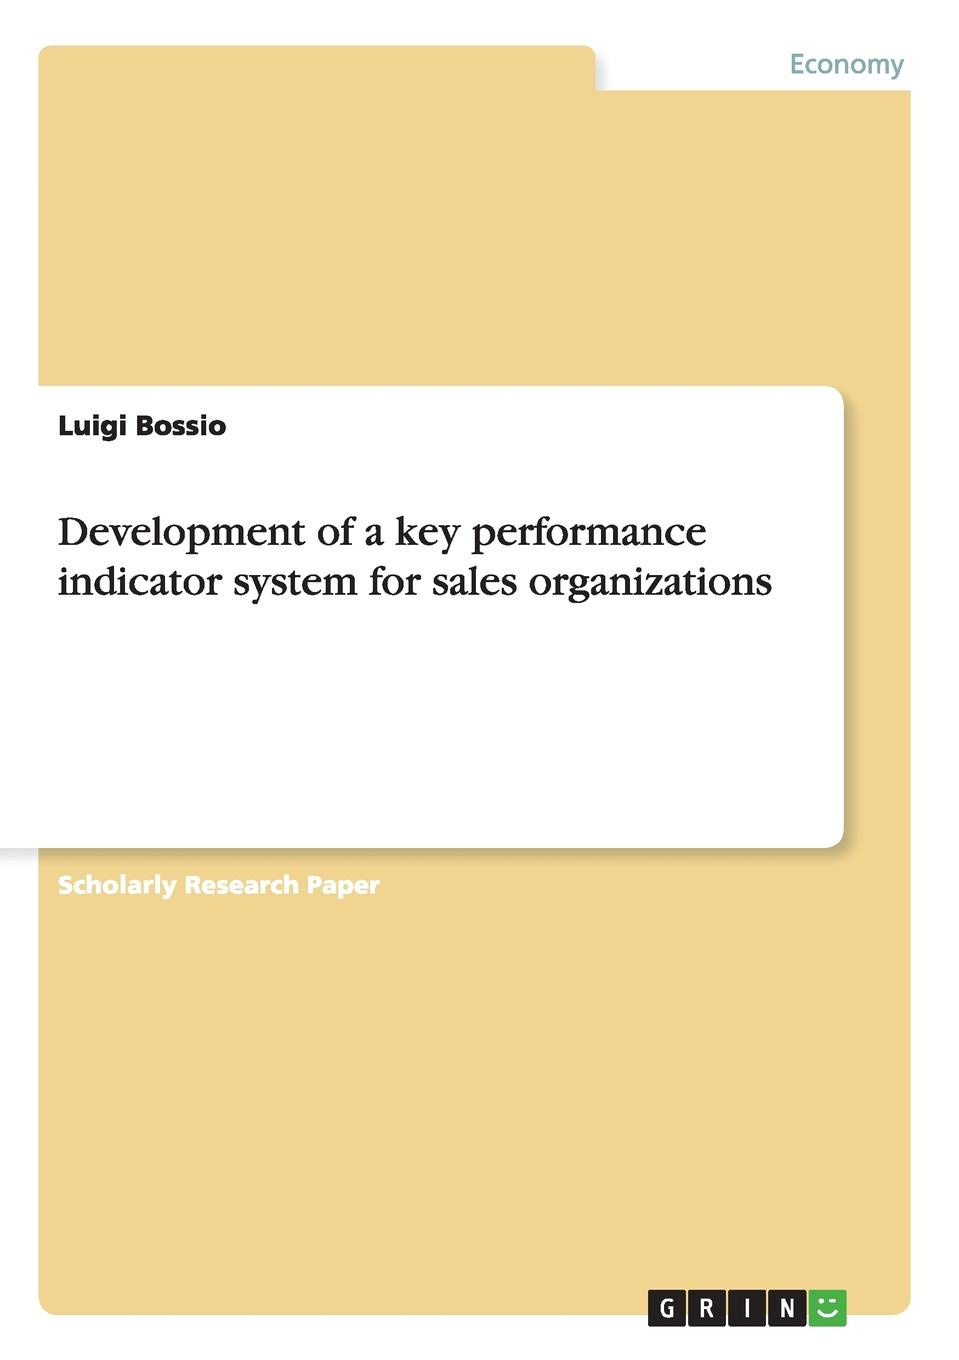 лучшая цена Luigi Bossio Development of a key performance indicator system for sales organizations